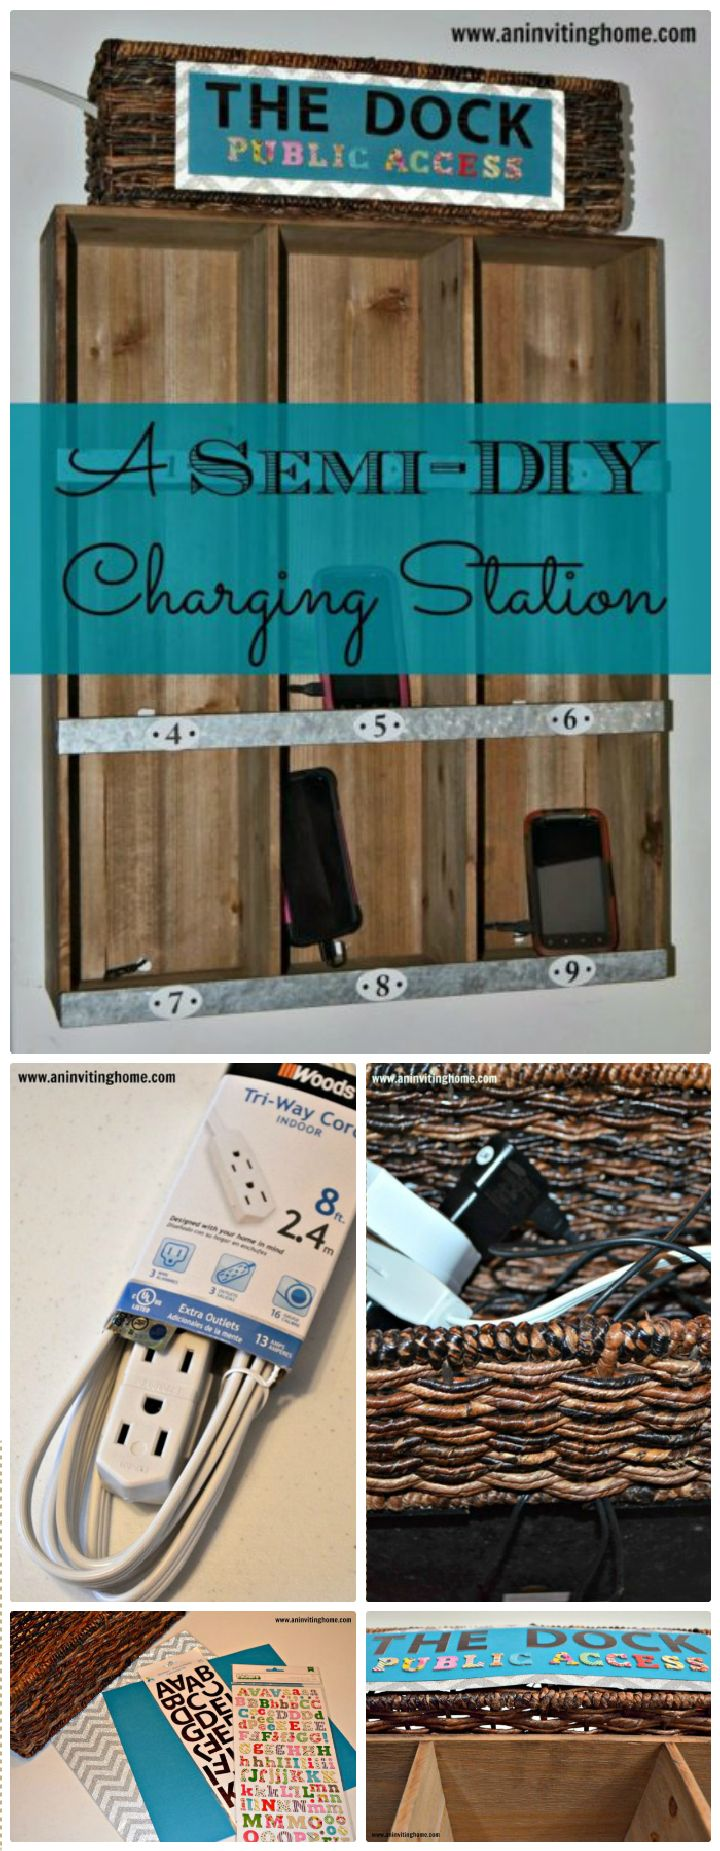 Semi-DIY Charging Station